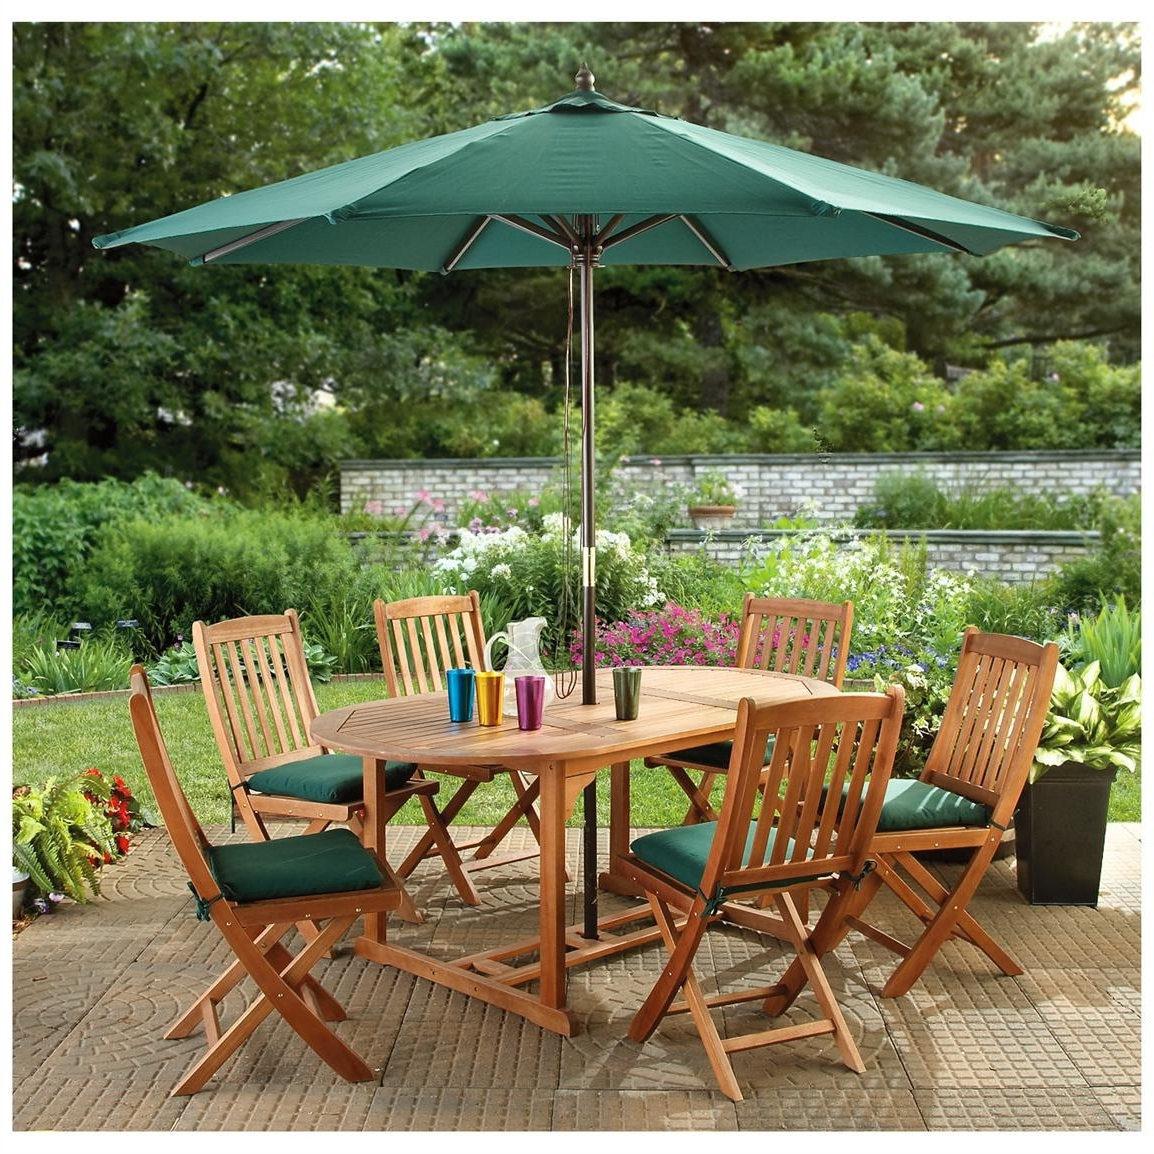 Current Patio Conversation Sets With Umbrella In Patio Furniture With Umbrella Ideas : Sathoud Decors – Decorating (View 4 of 15)